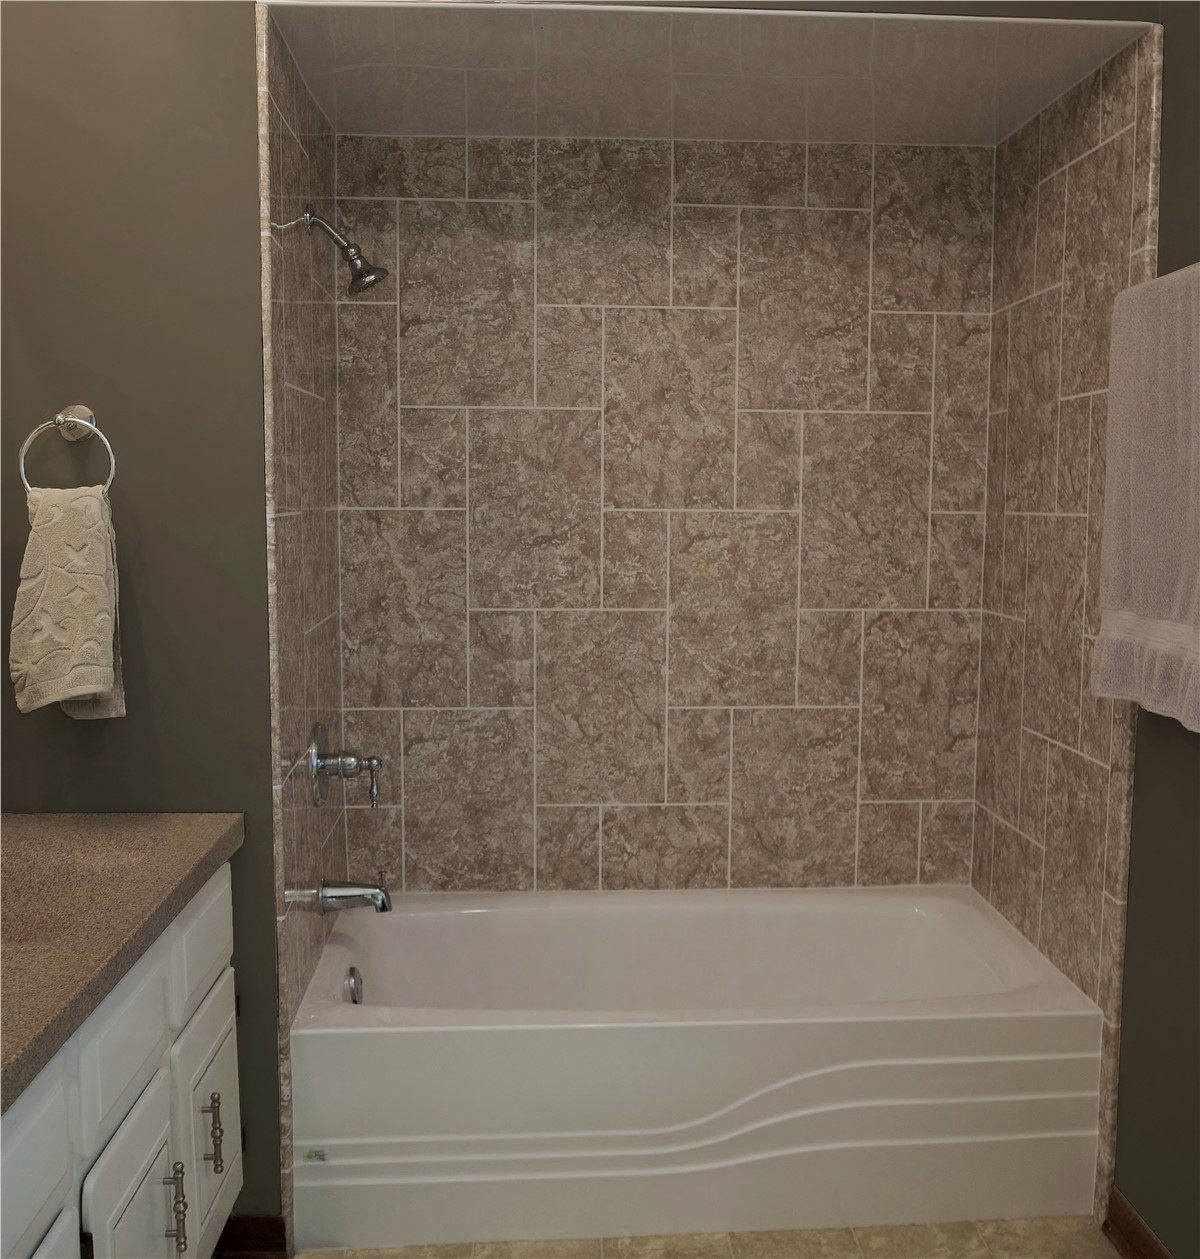 Ordinaire Bath Wall Surrounds Photo 4